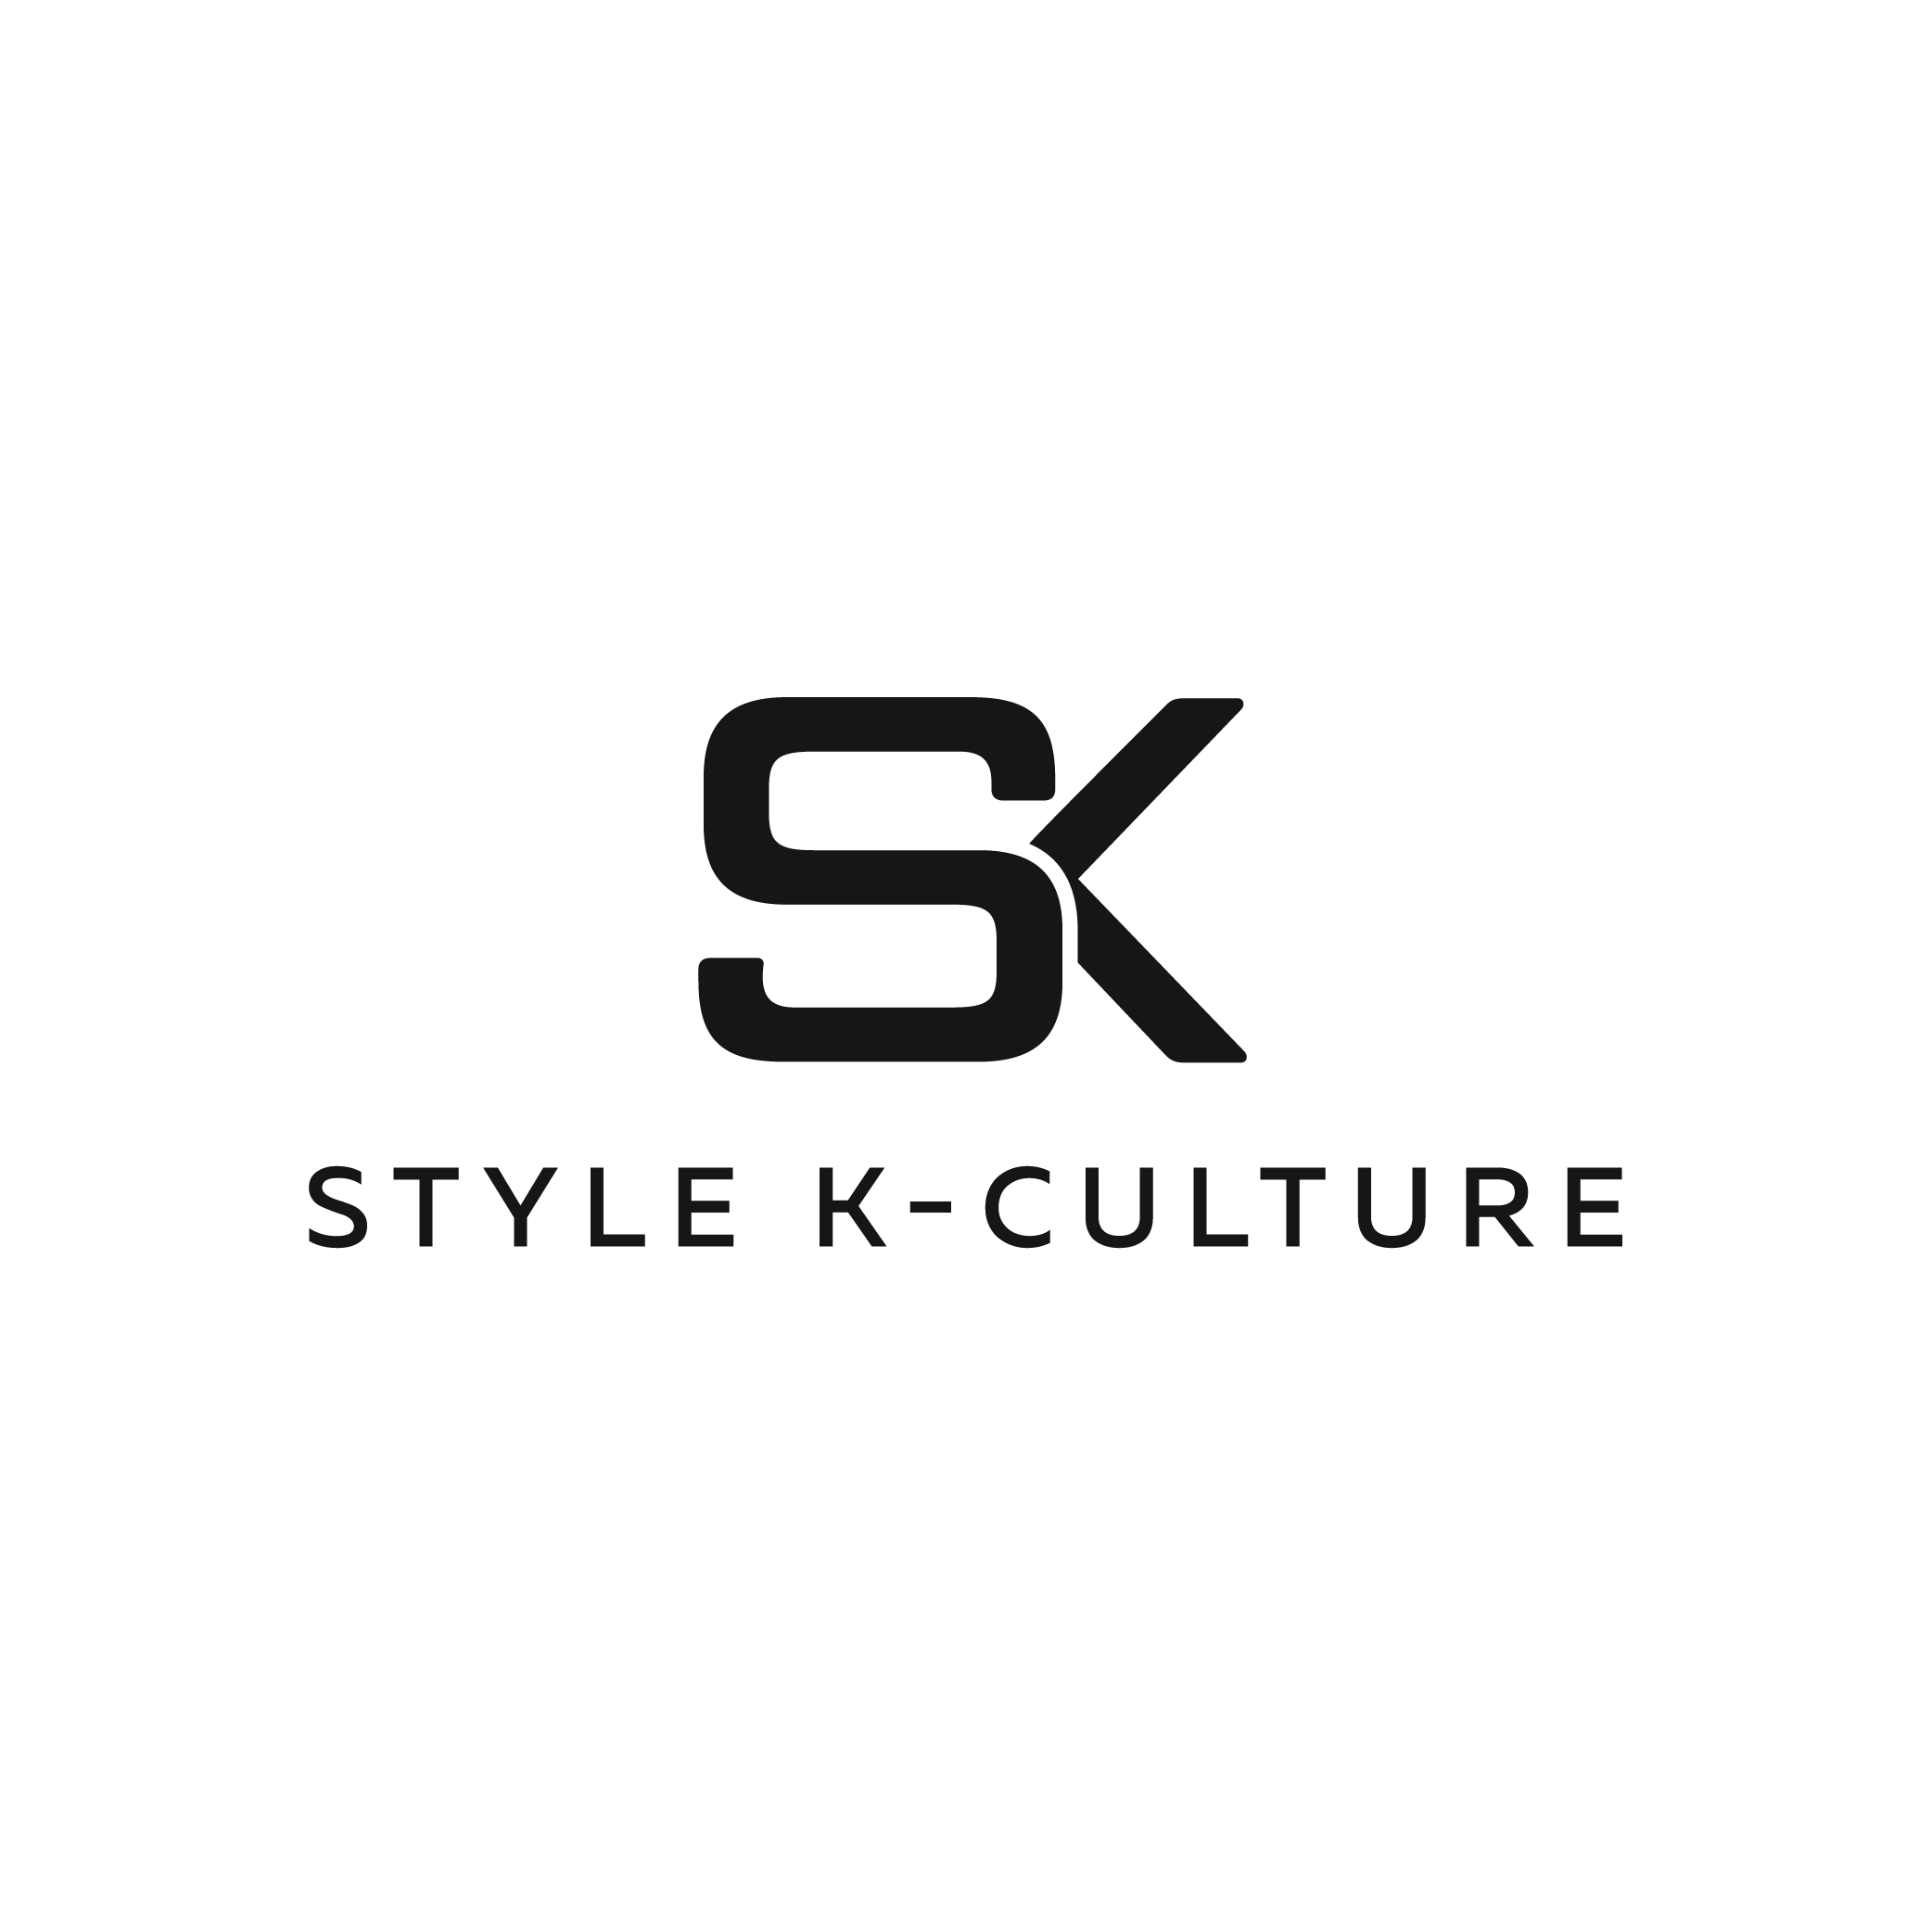 SK STYLE